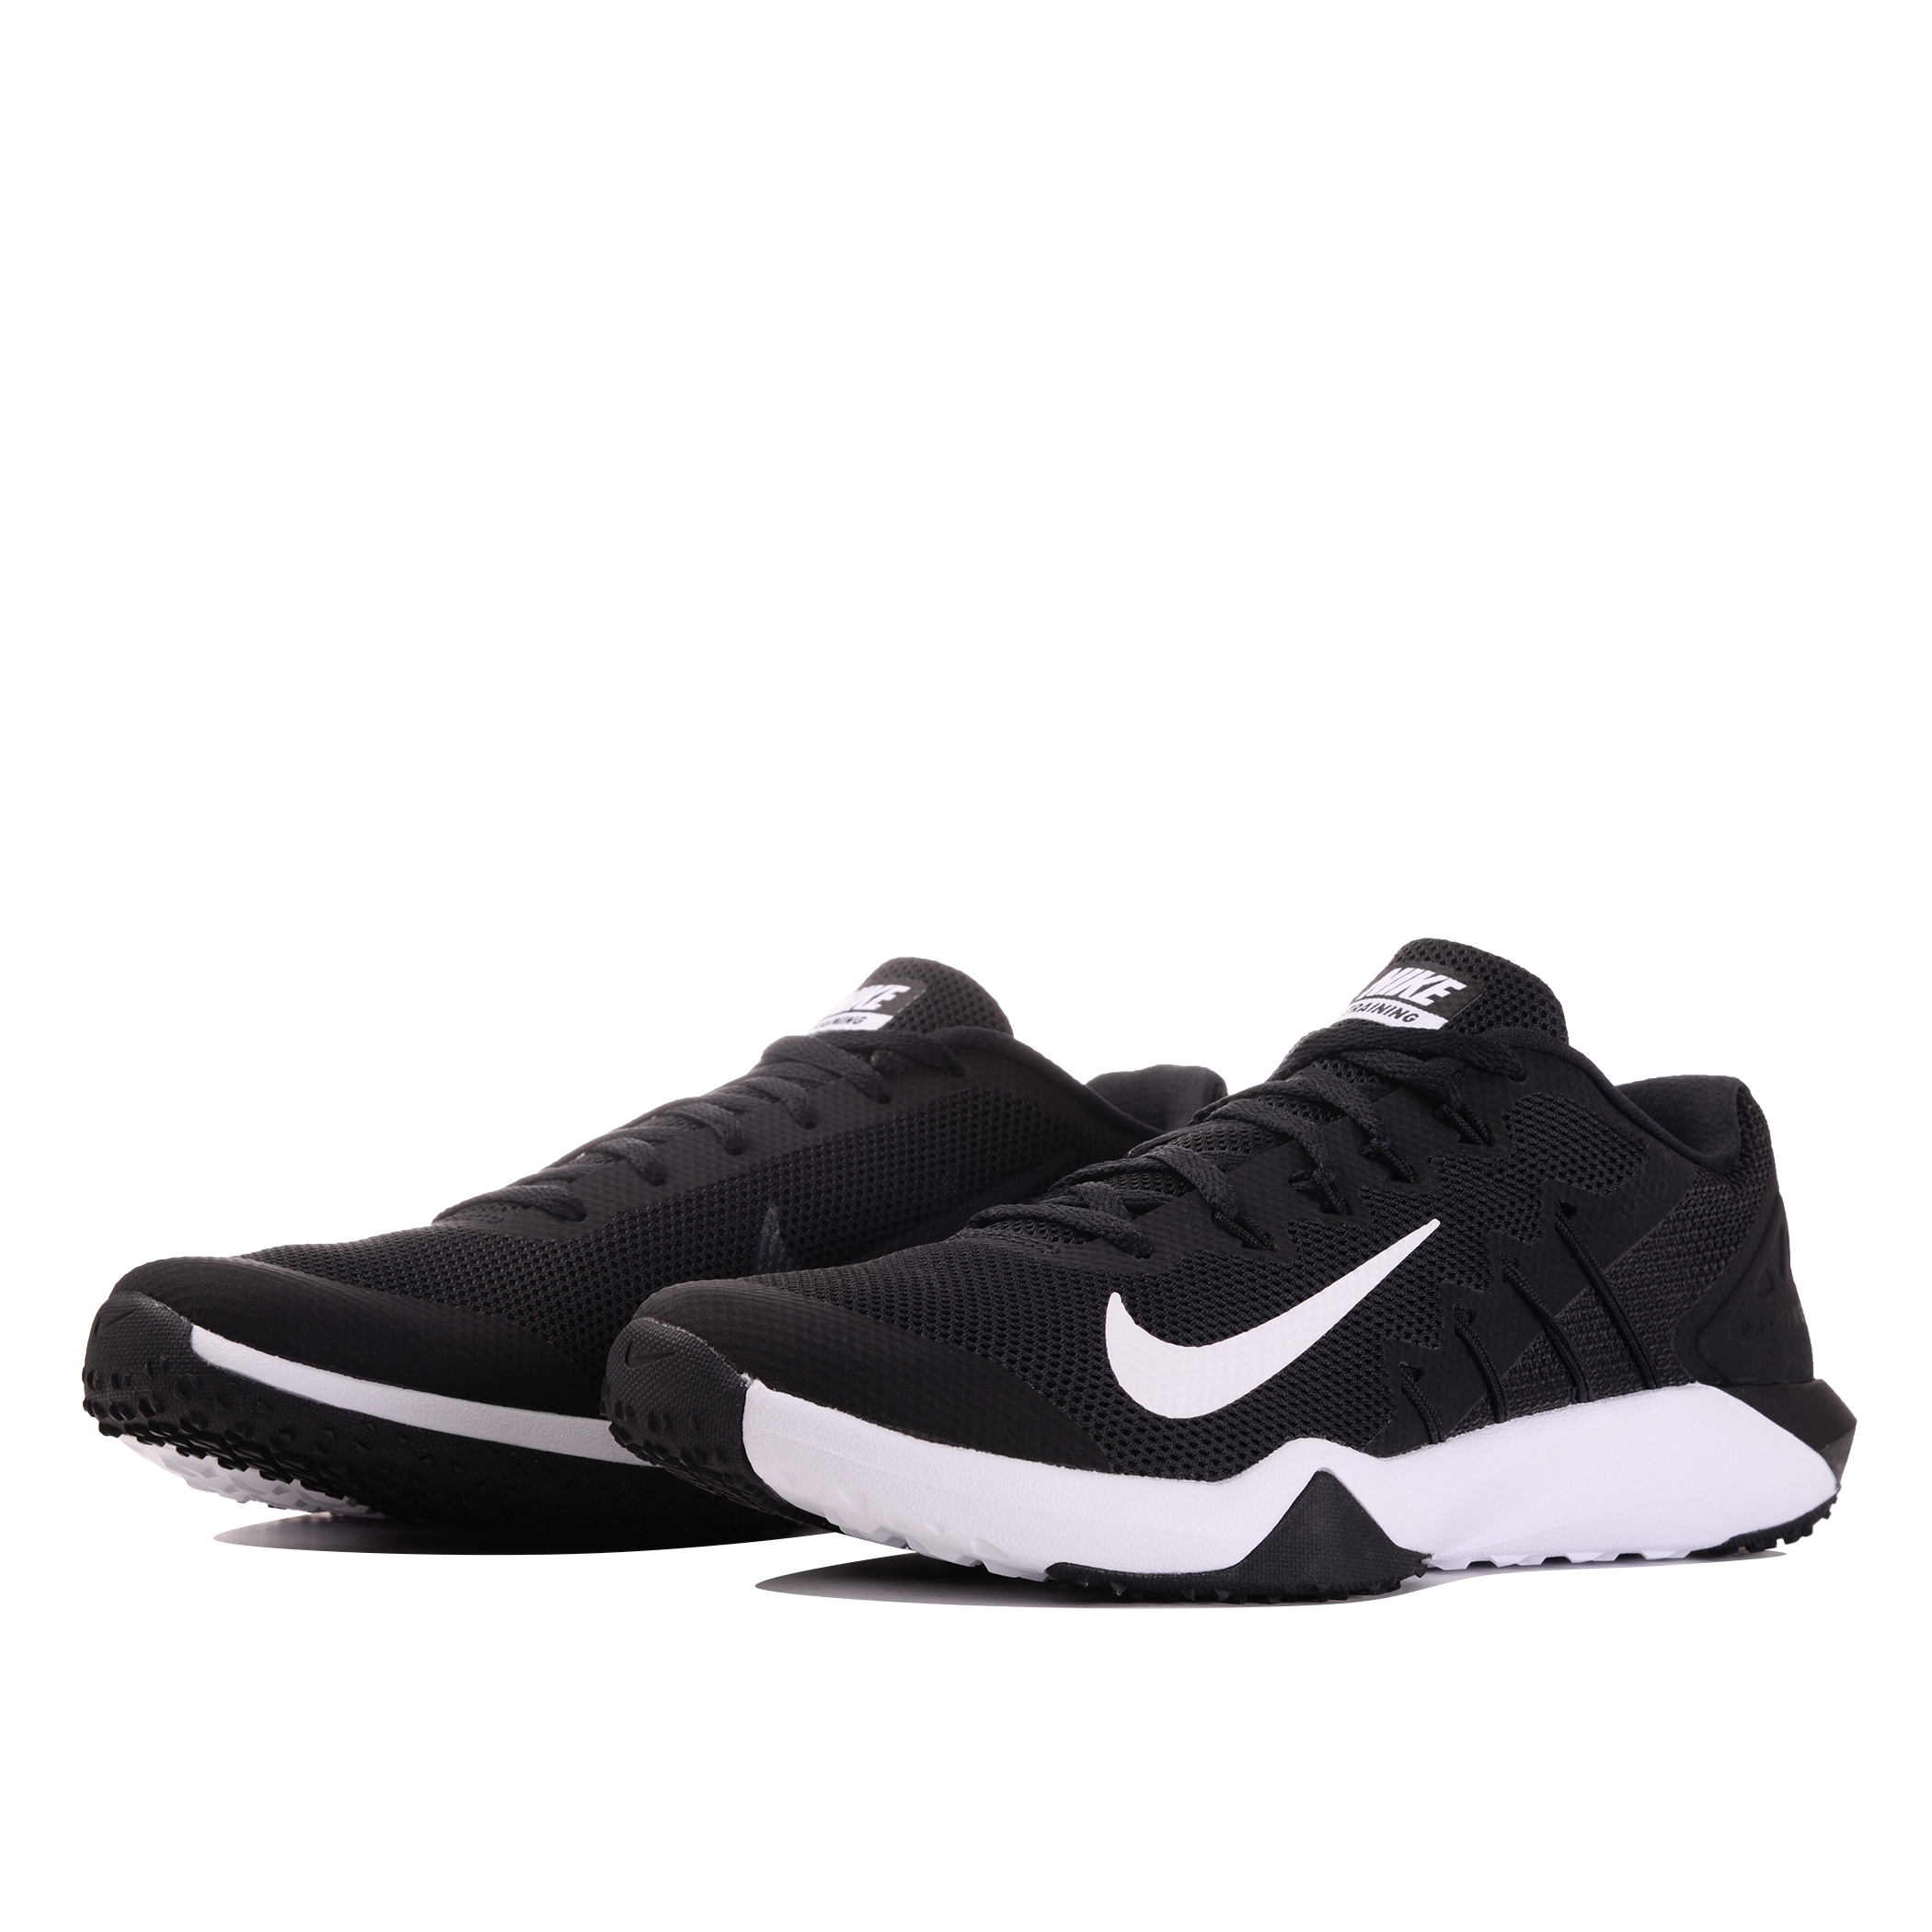 17dda21b Мужские кроссовки Nike Retaliation Training 2 Black/White-Anthracite - фото  2